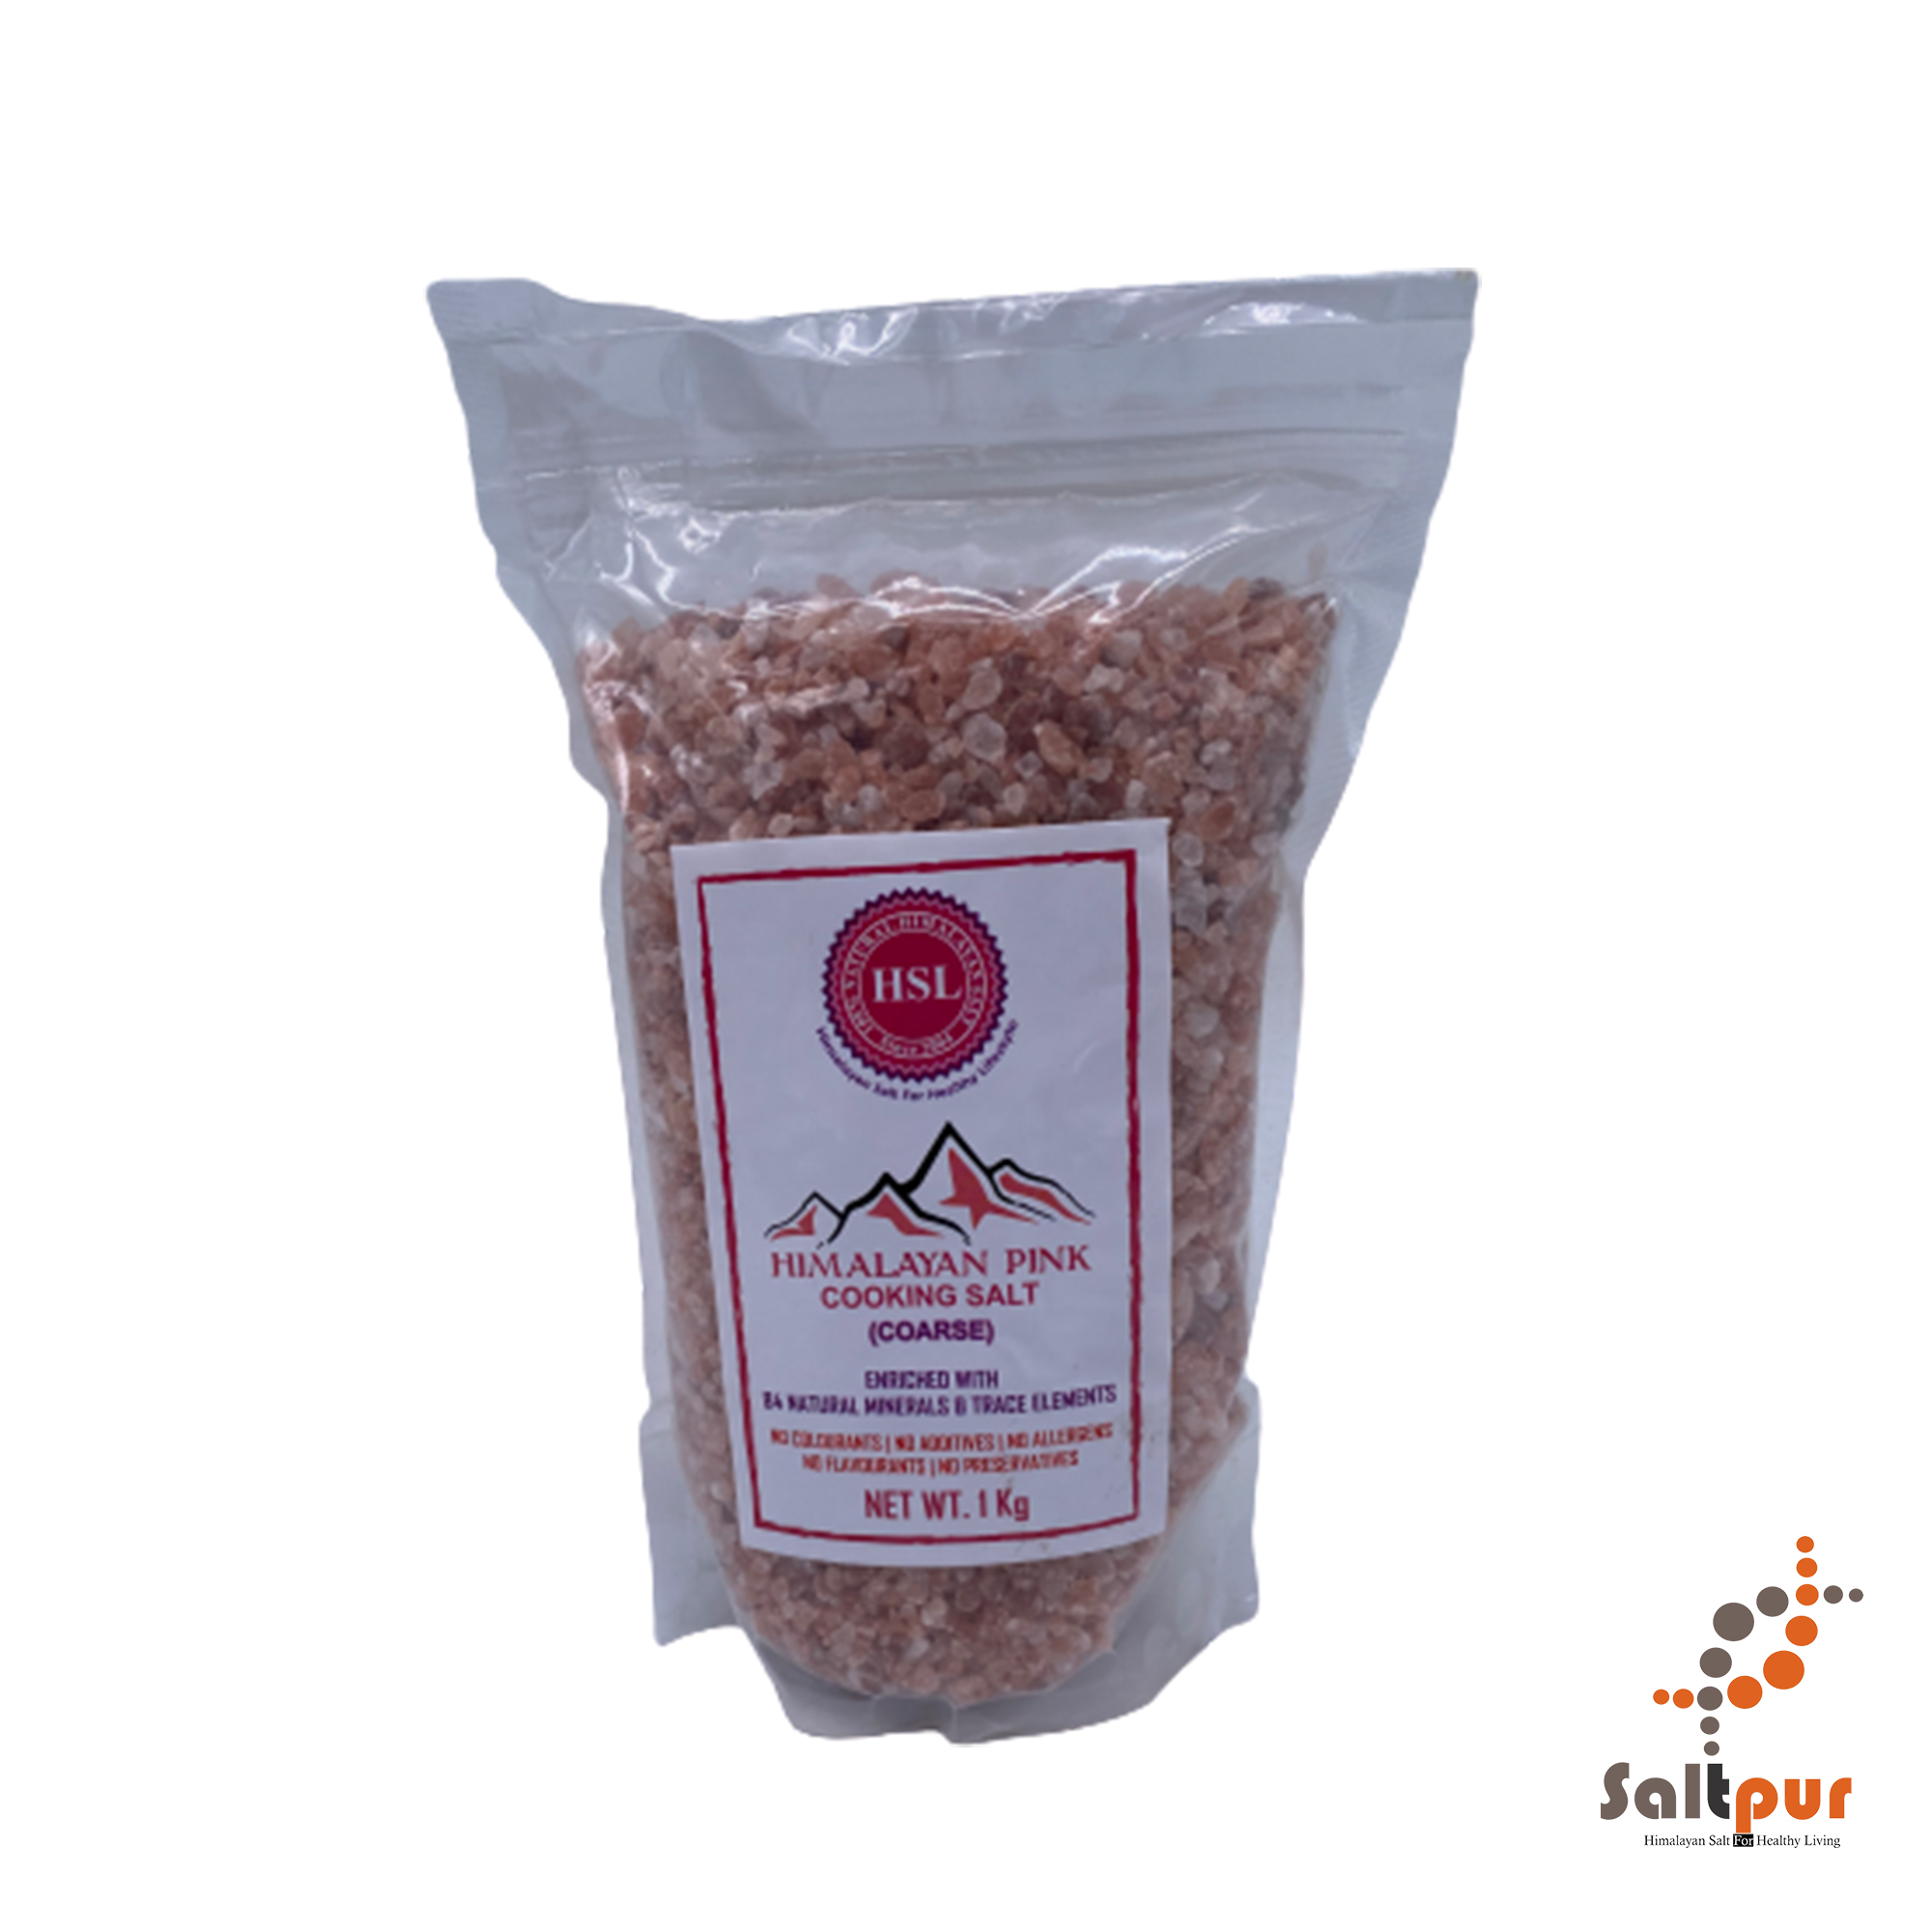 1 white background 1 1 - Saltpur Himalayan Salts